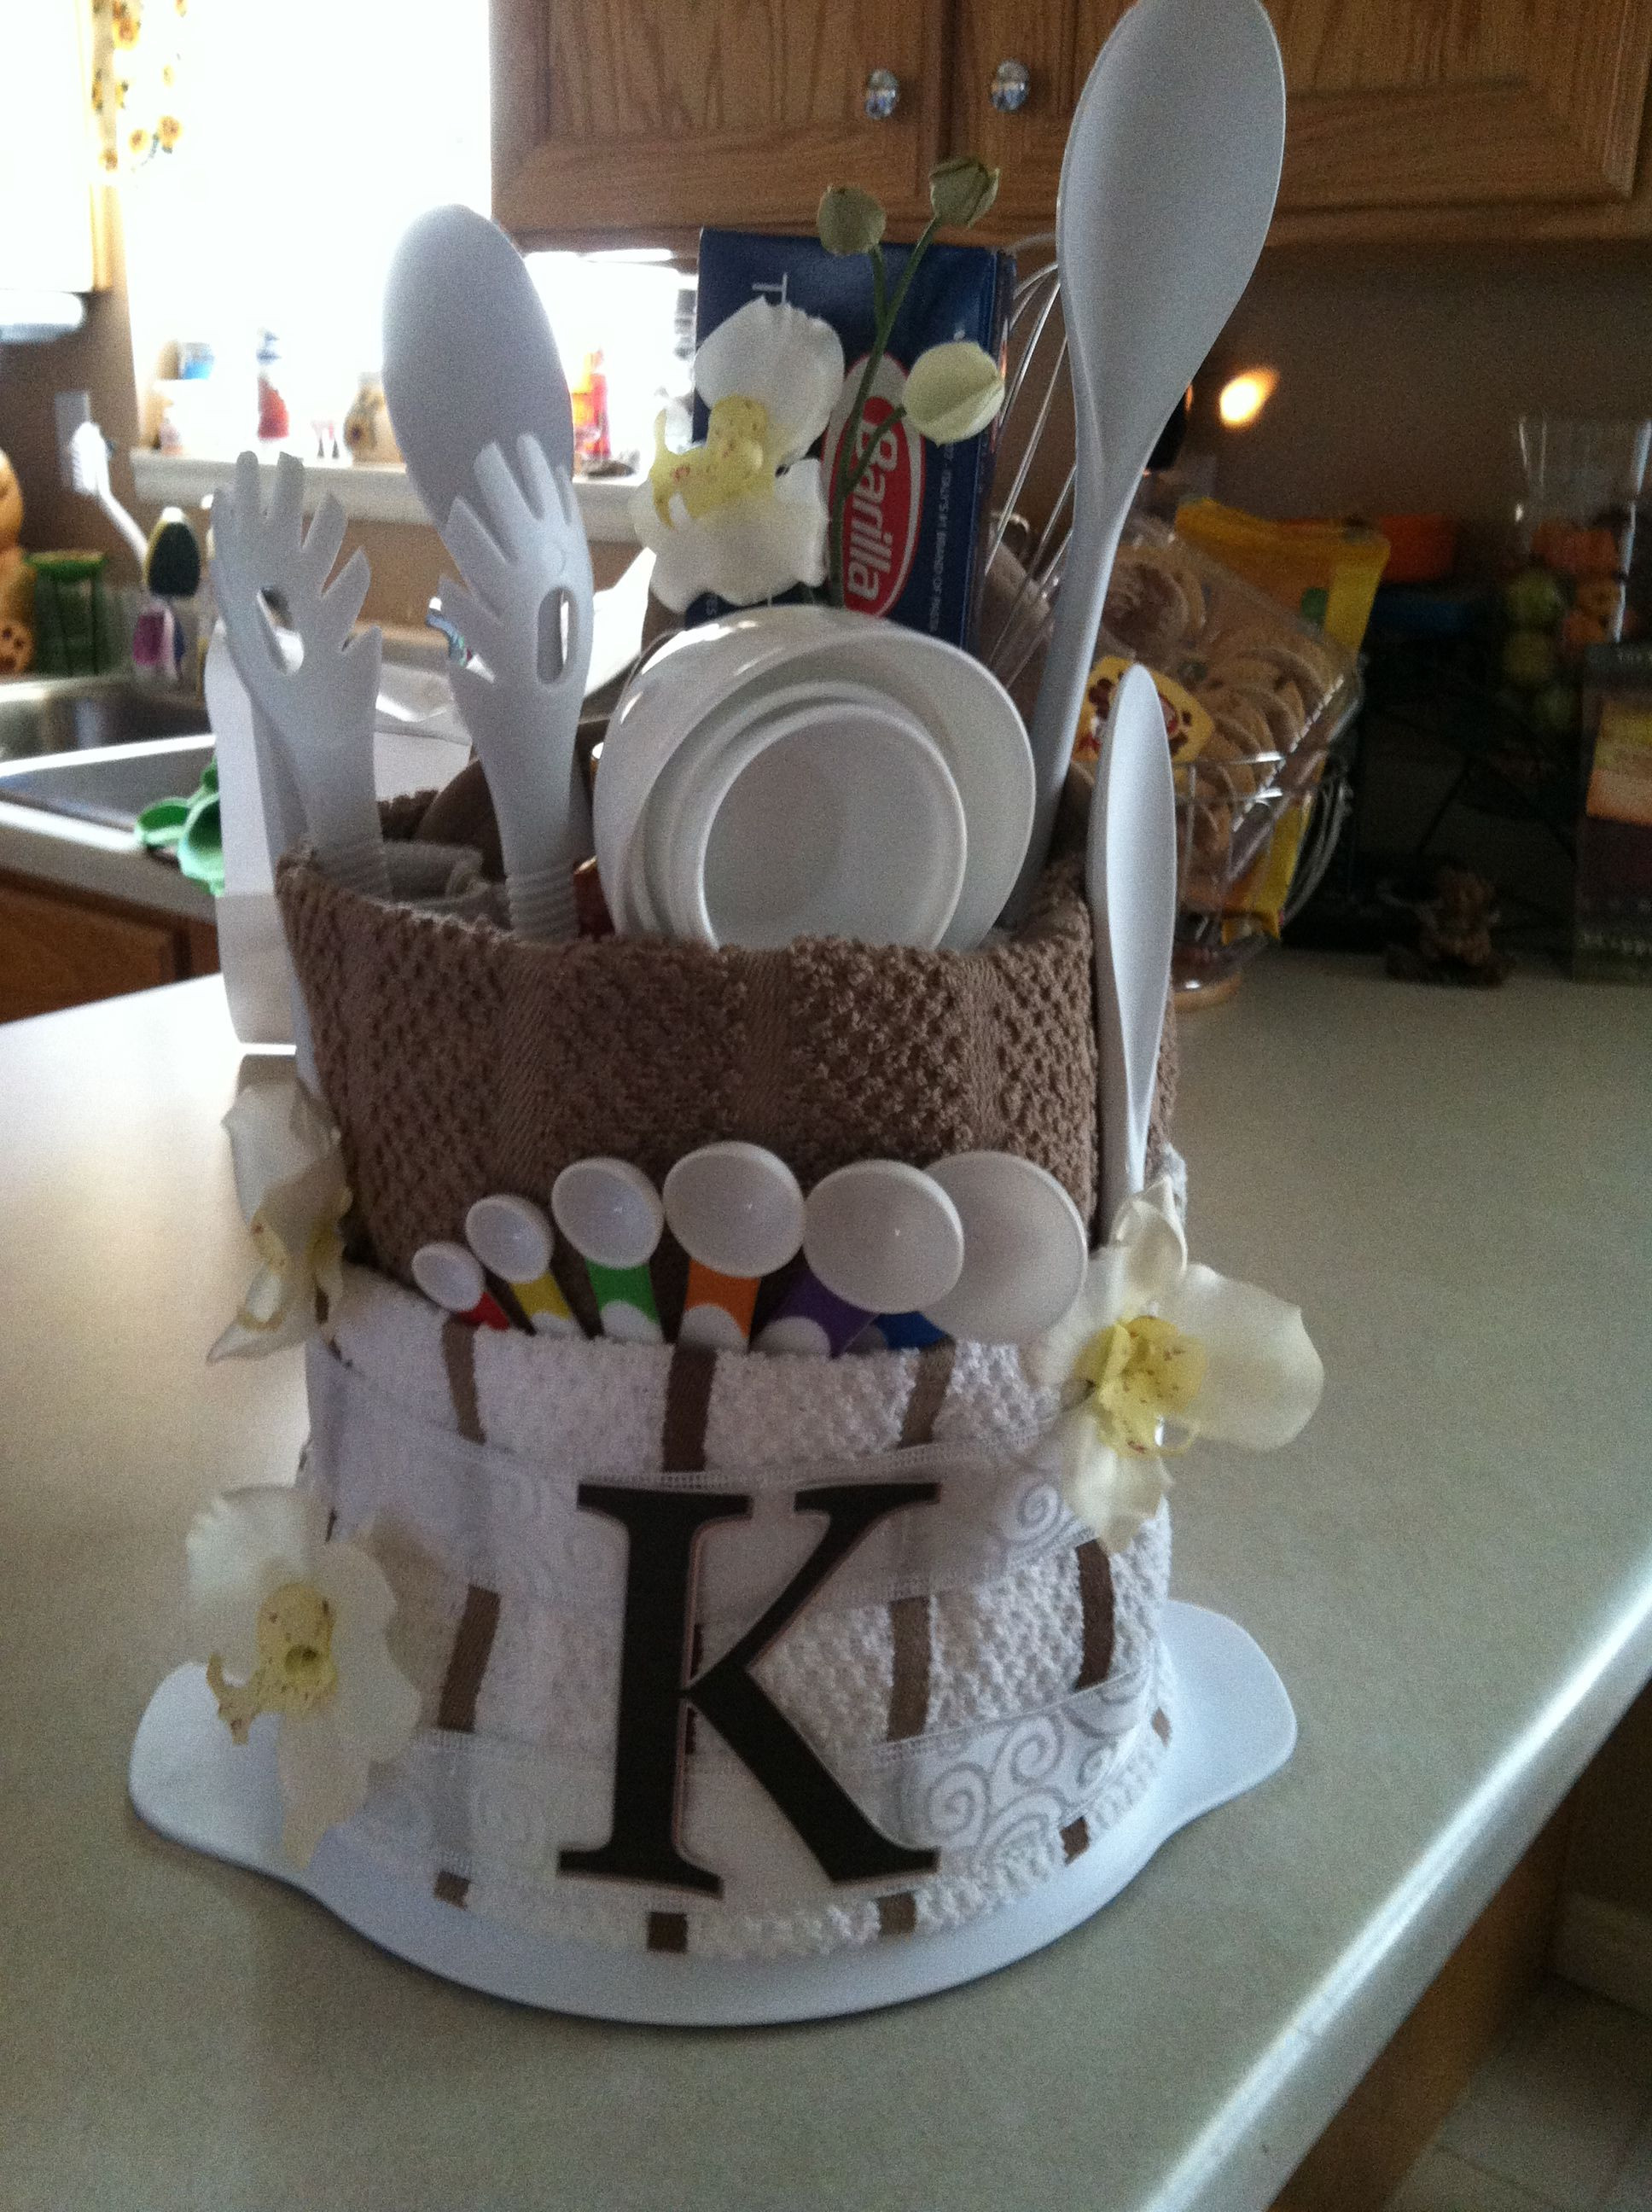 Best ideas about Fun Wedding Gift Ideas . Save or Pin Personalized Wedding Gifts ideas and Unique Wedding Gifts Now.